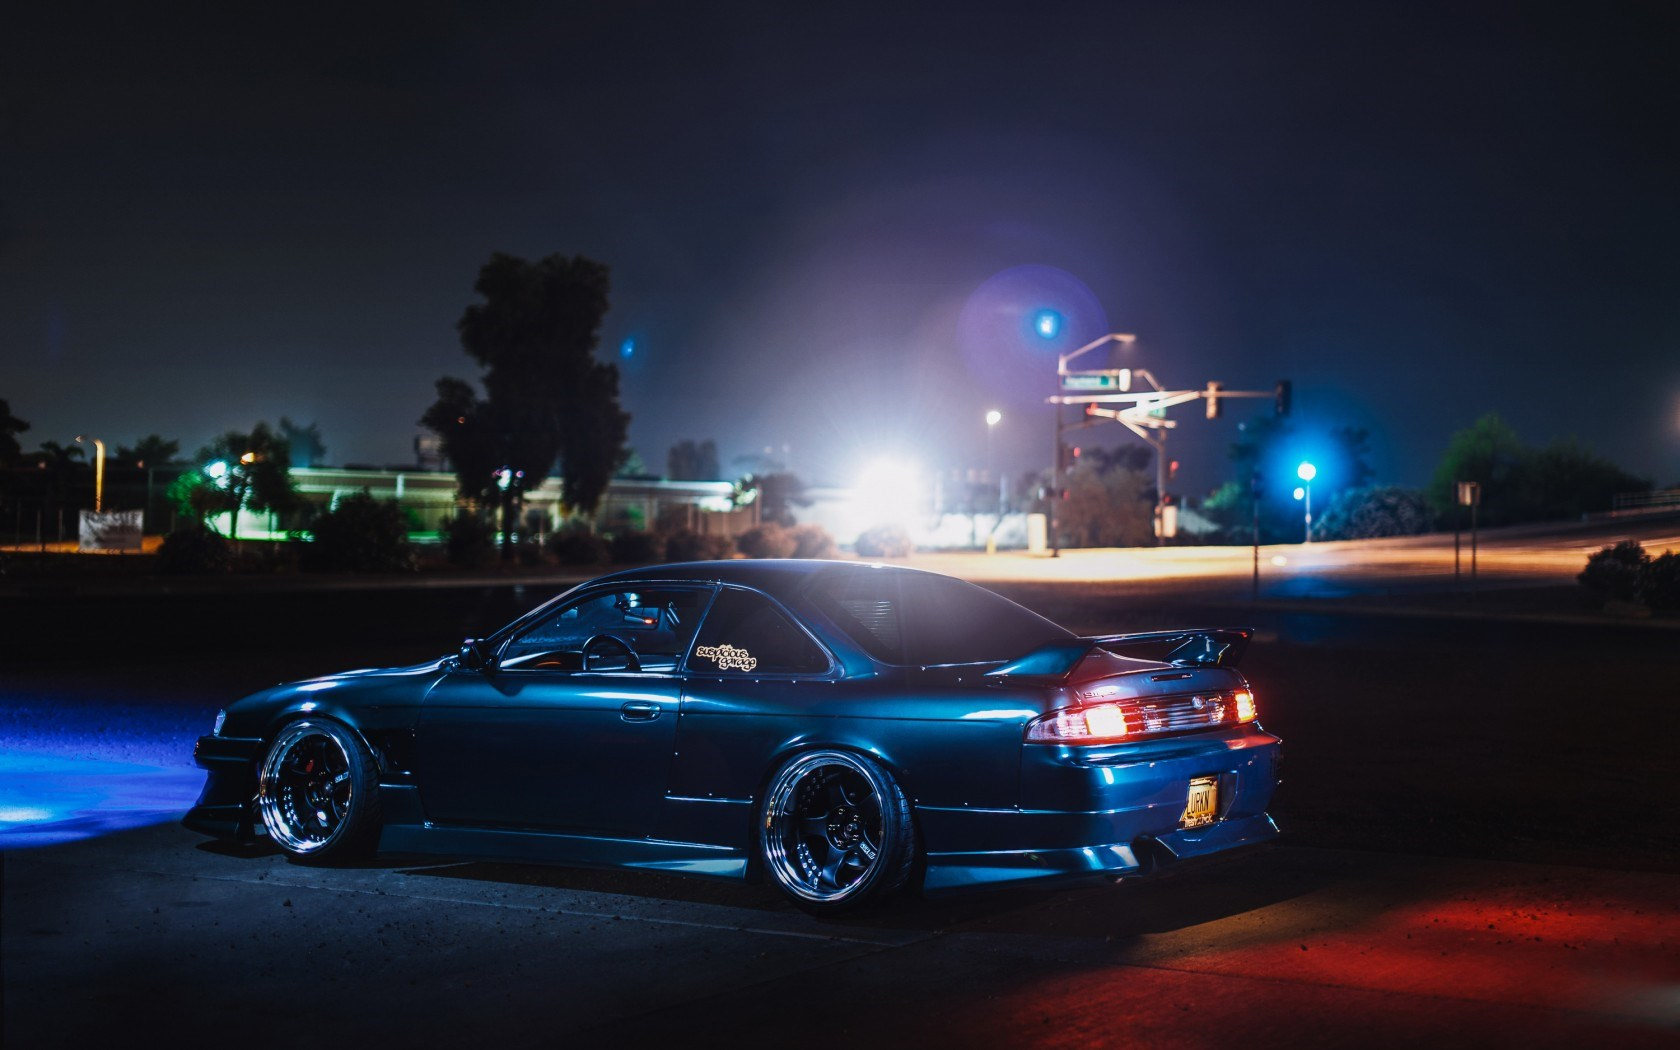 Nissan Silvia S14 240SX Tuning Night